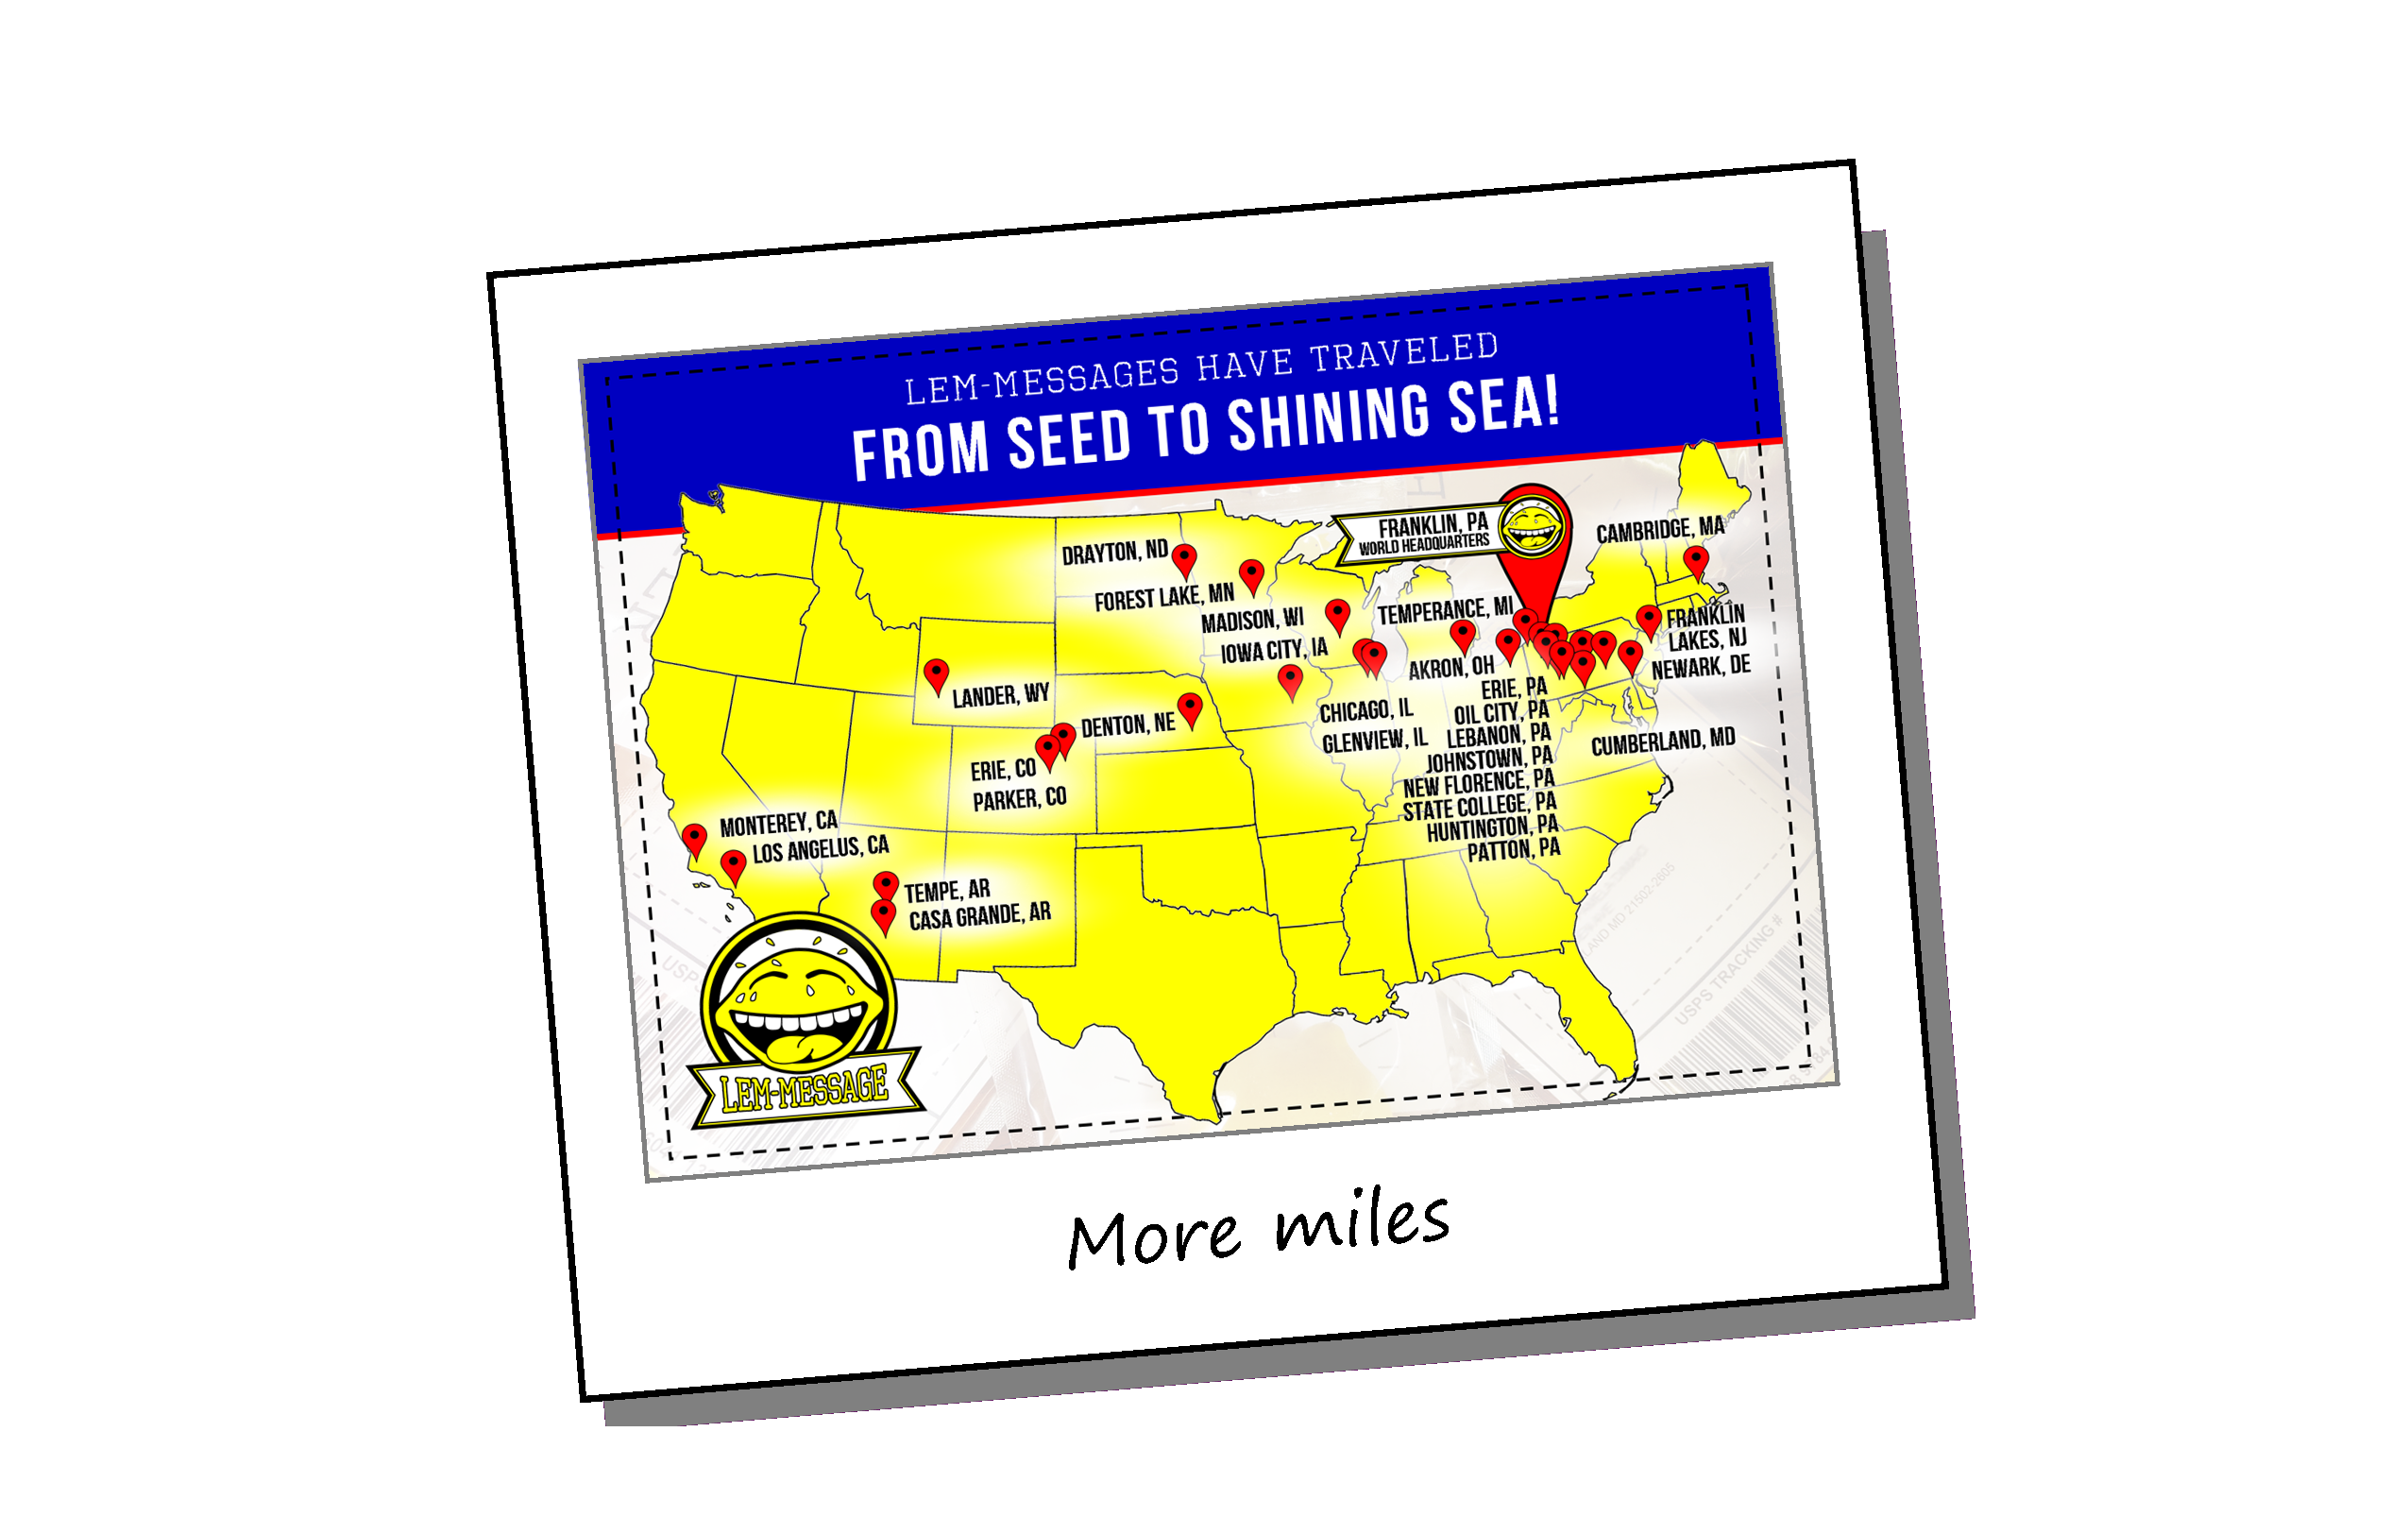 We've traveled thousands of miles!